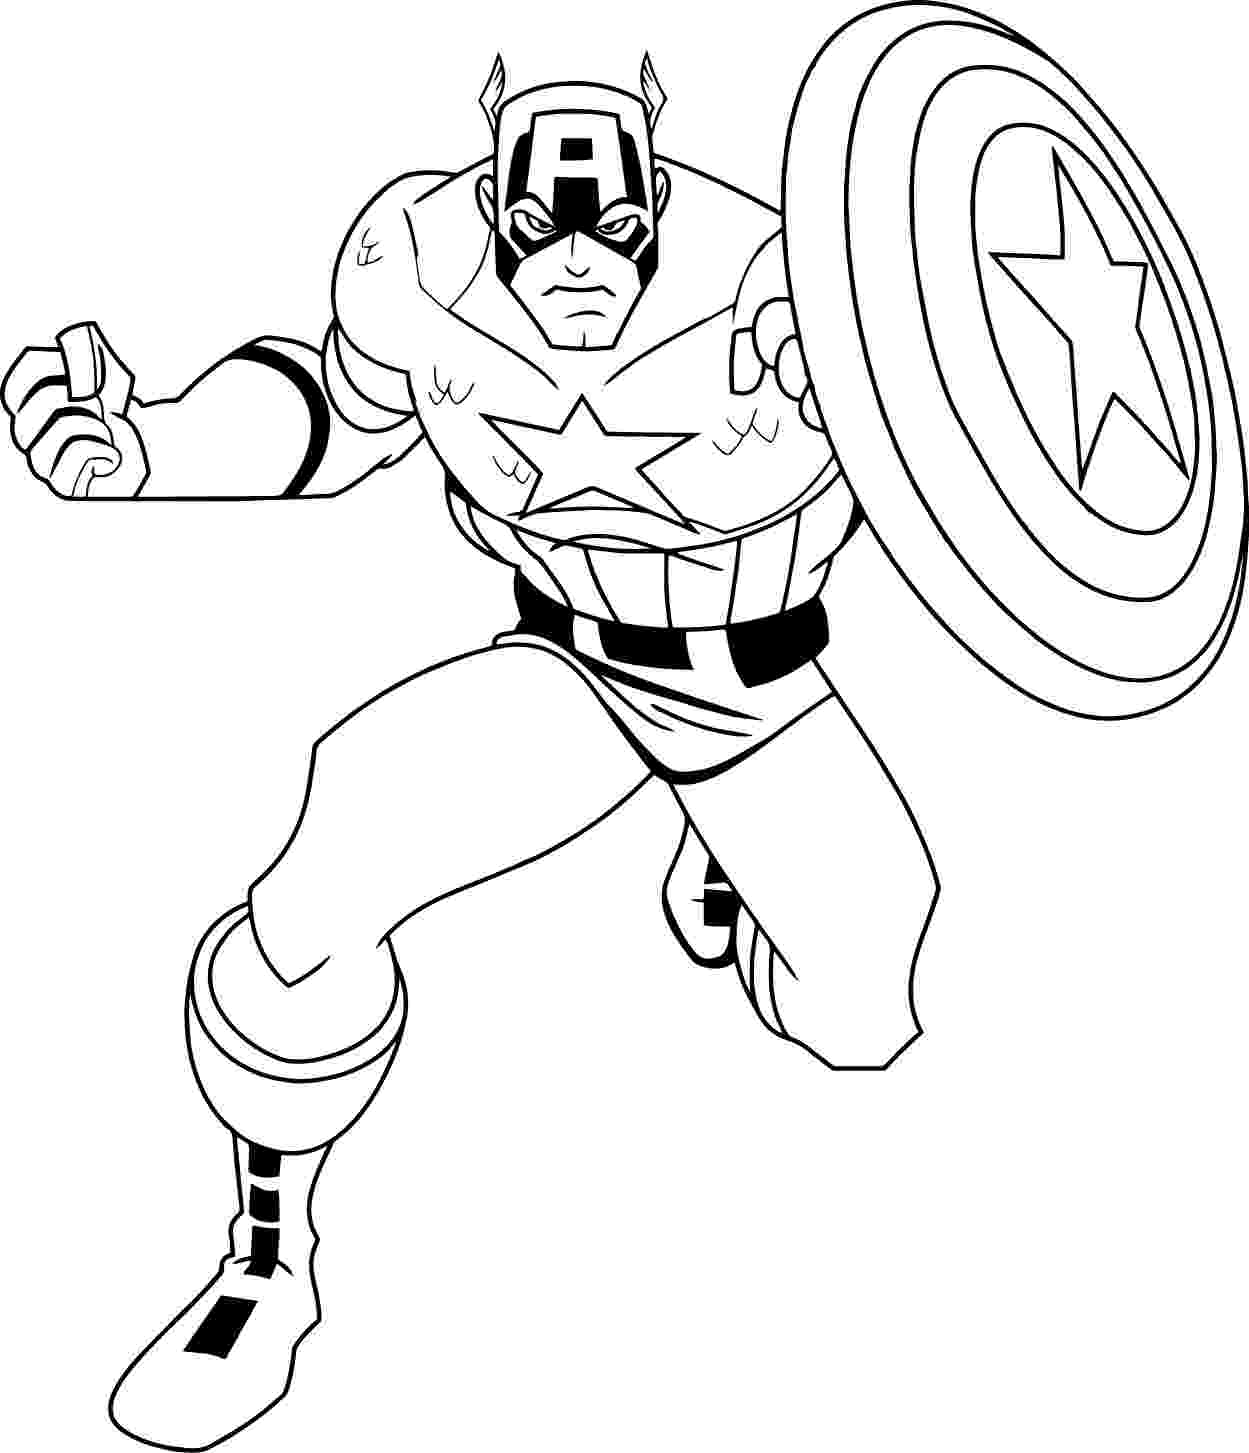 captain america coloring sheet free printable captain america coloring pages for kids sheet captain america coloring